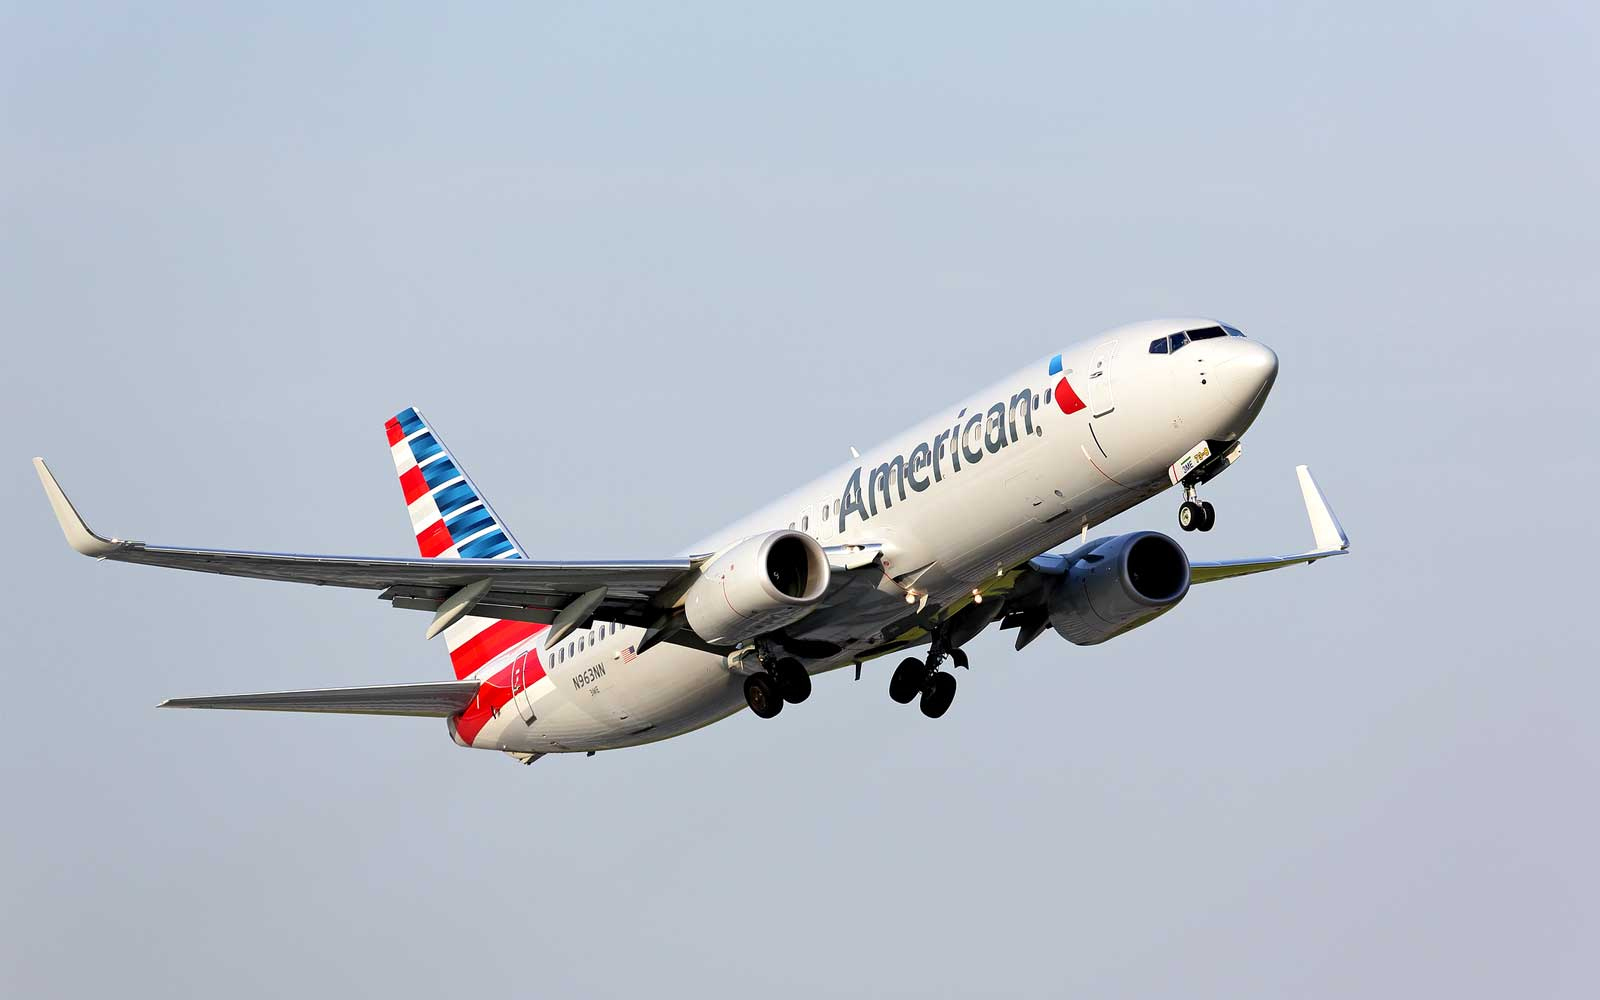 American Airlines Cancels 40 Flights Due to Overhead Bins Popping Open